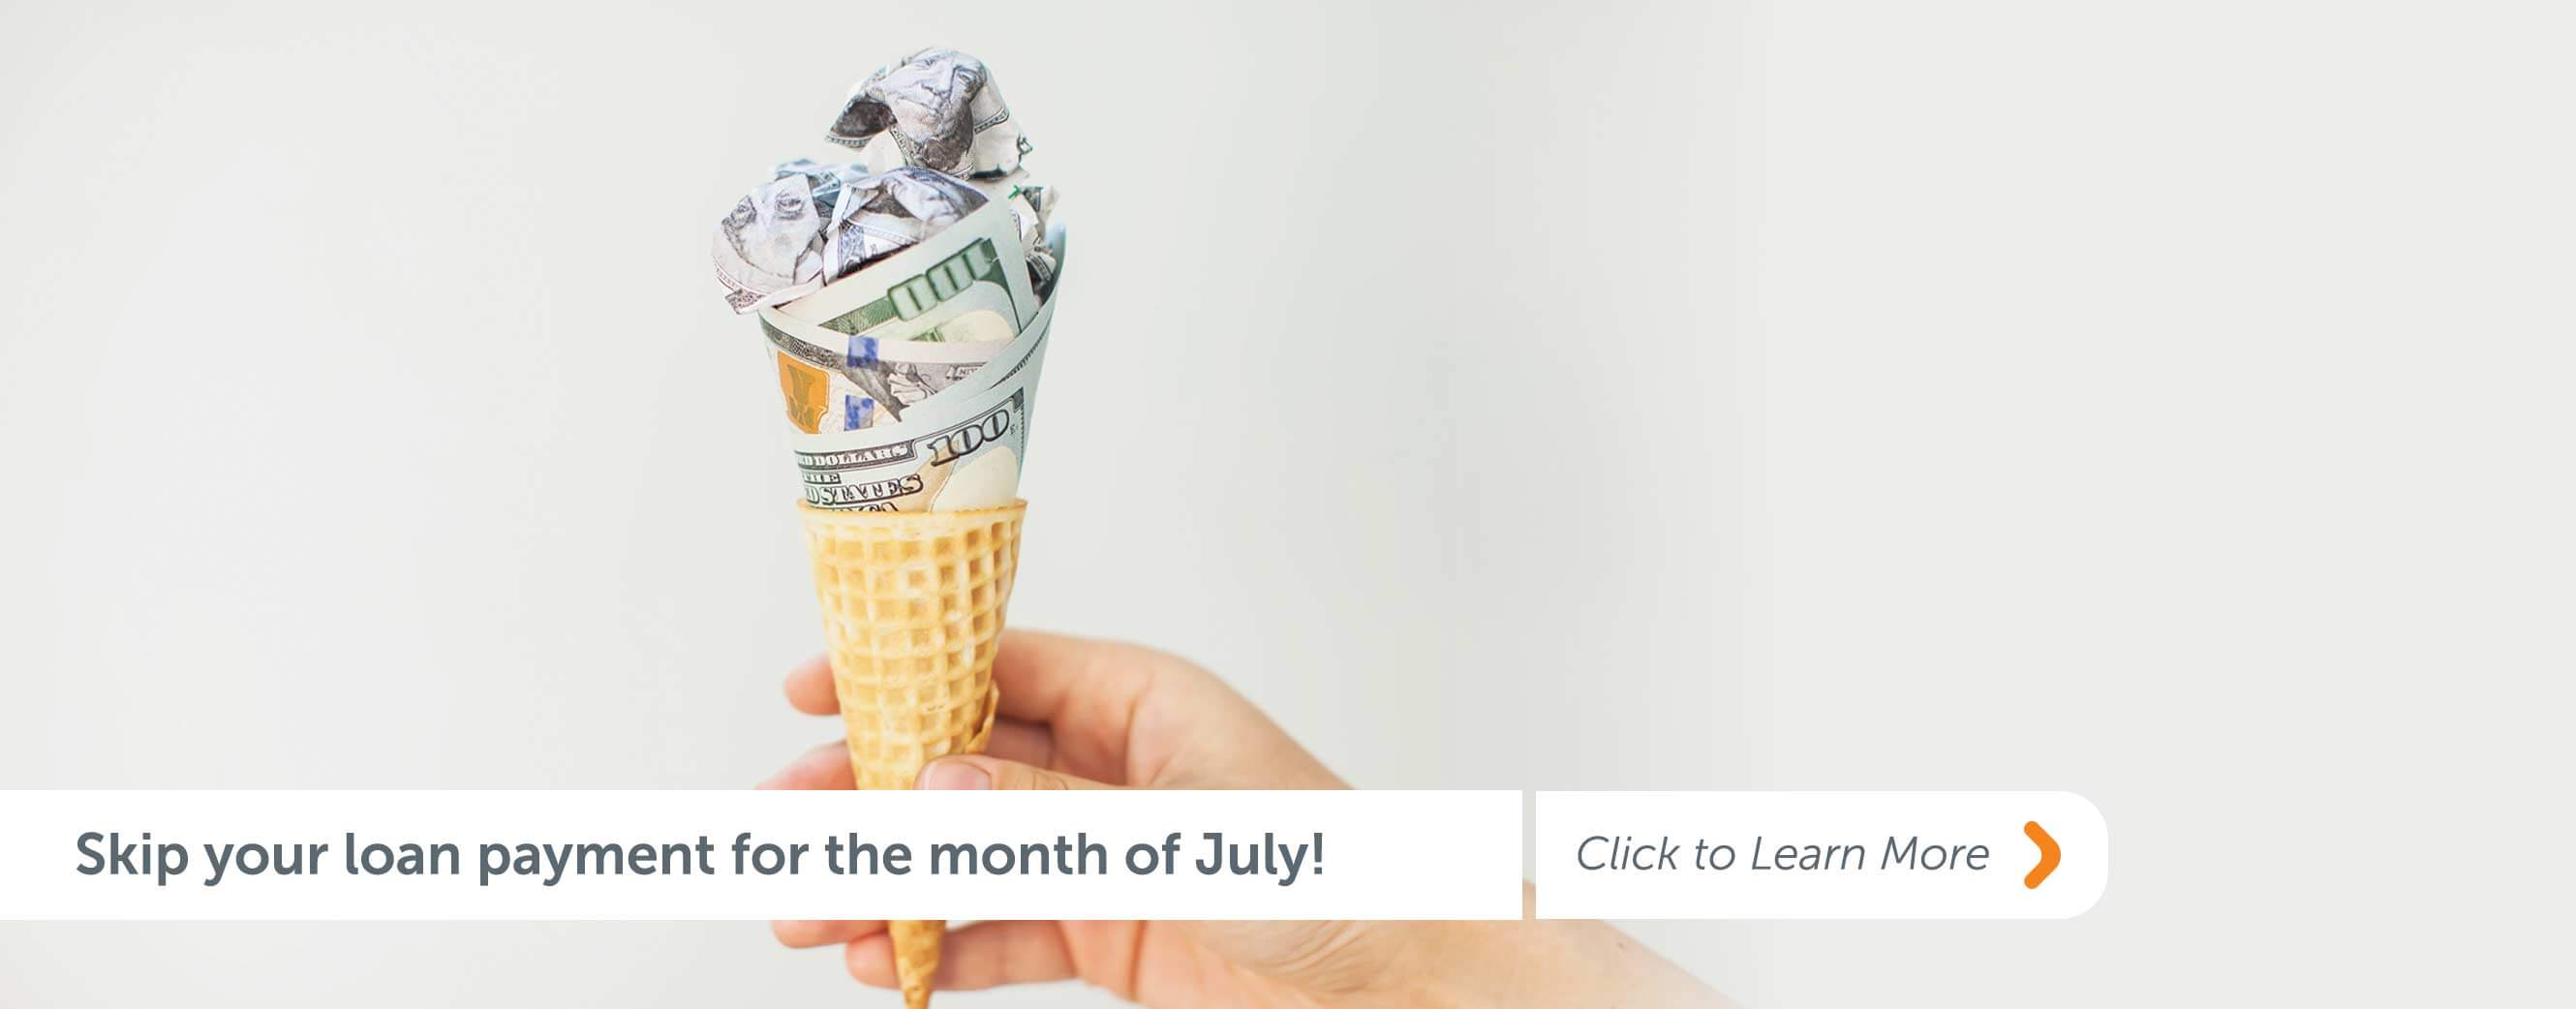 Skip your loan payment for the month of July! Click to learn more